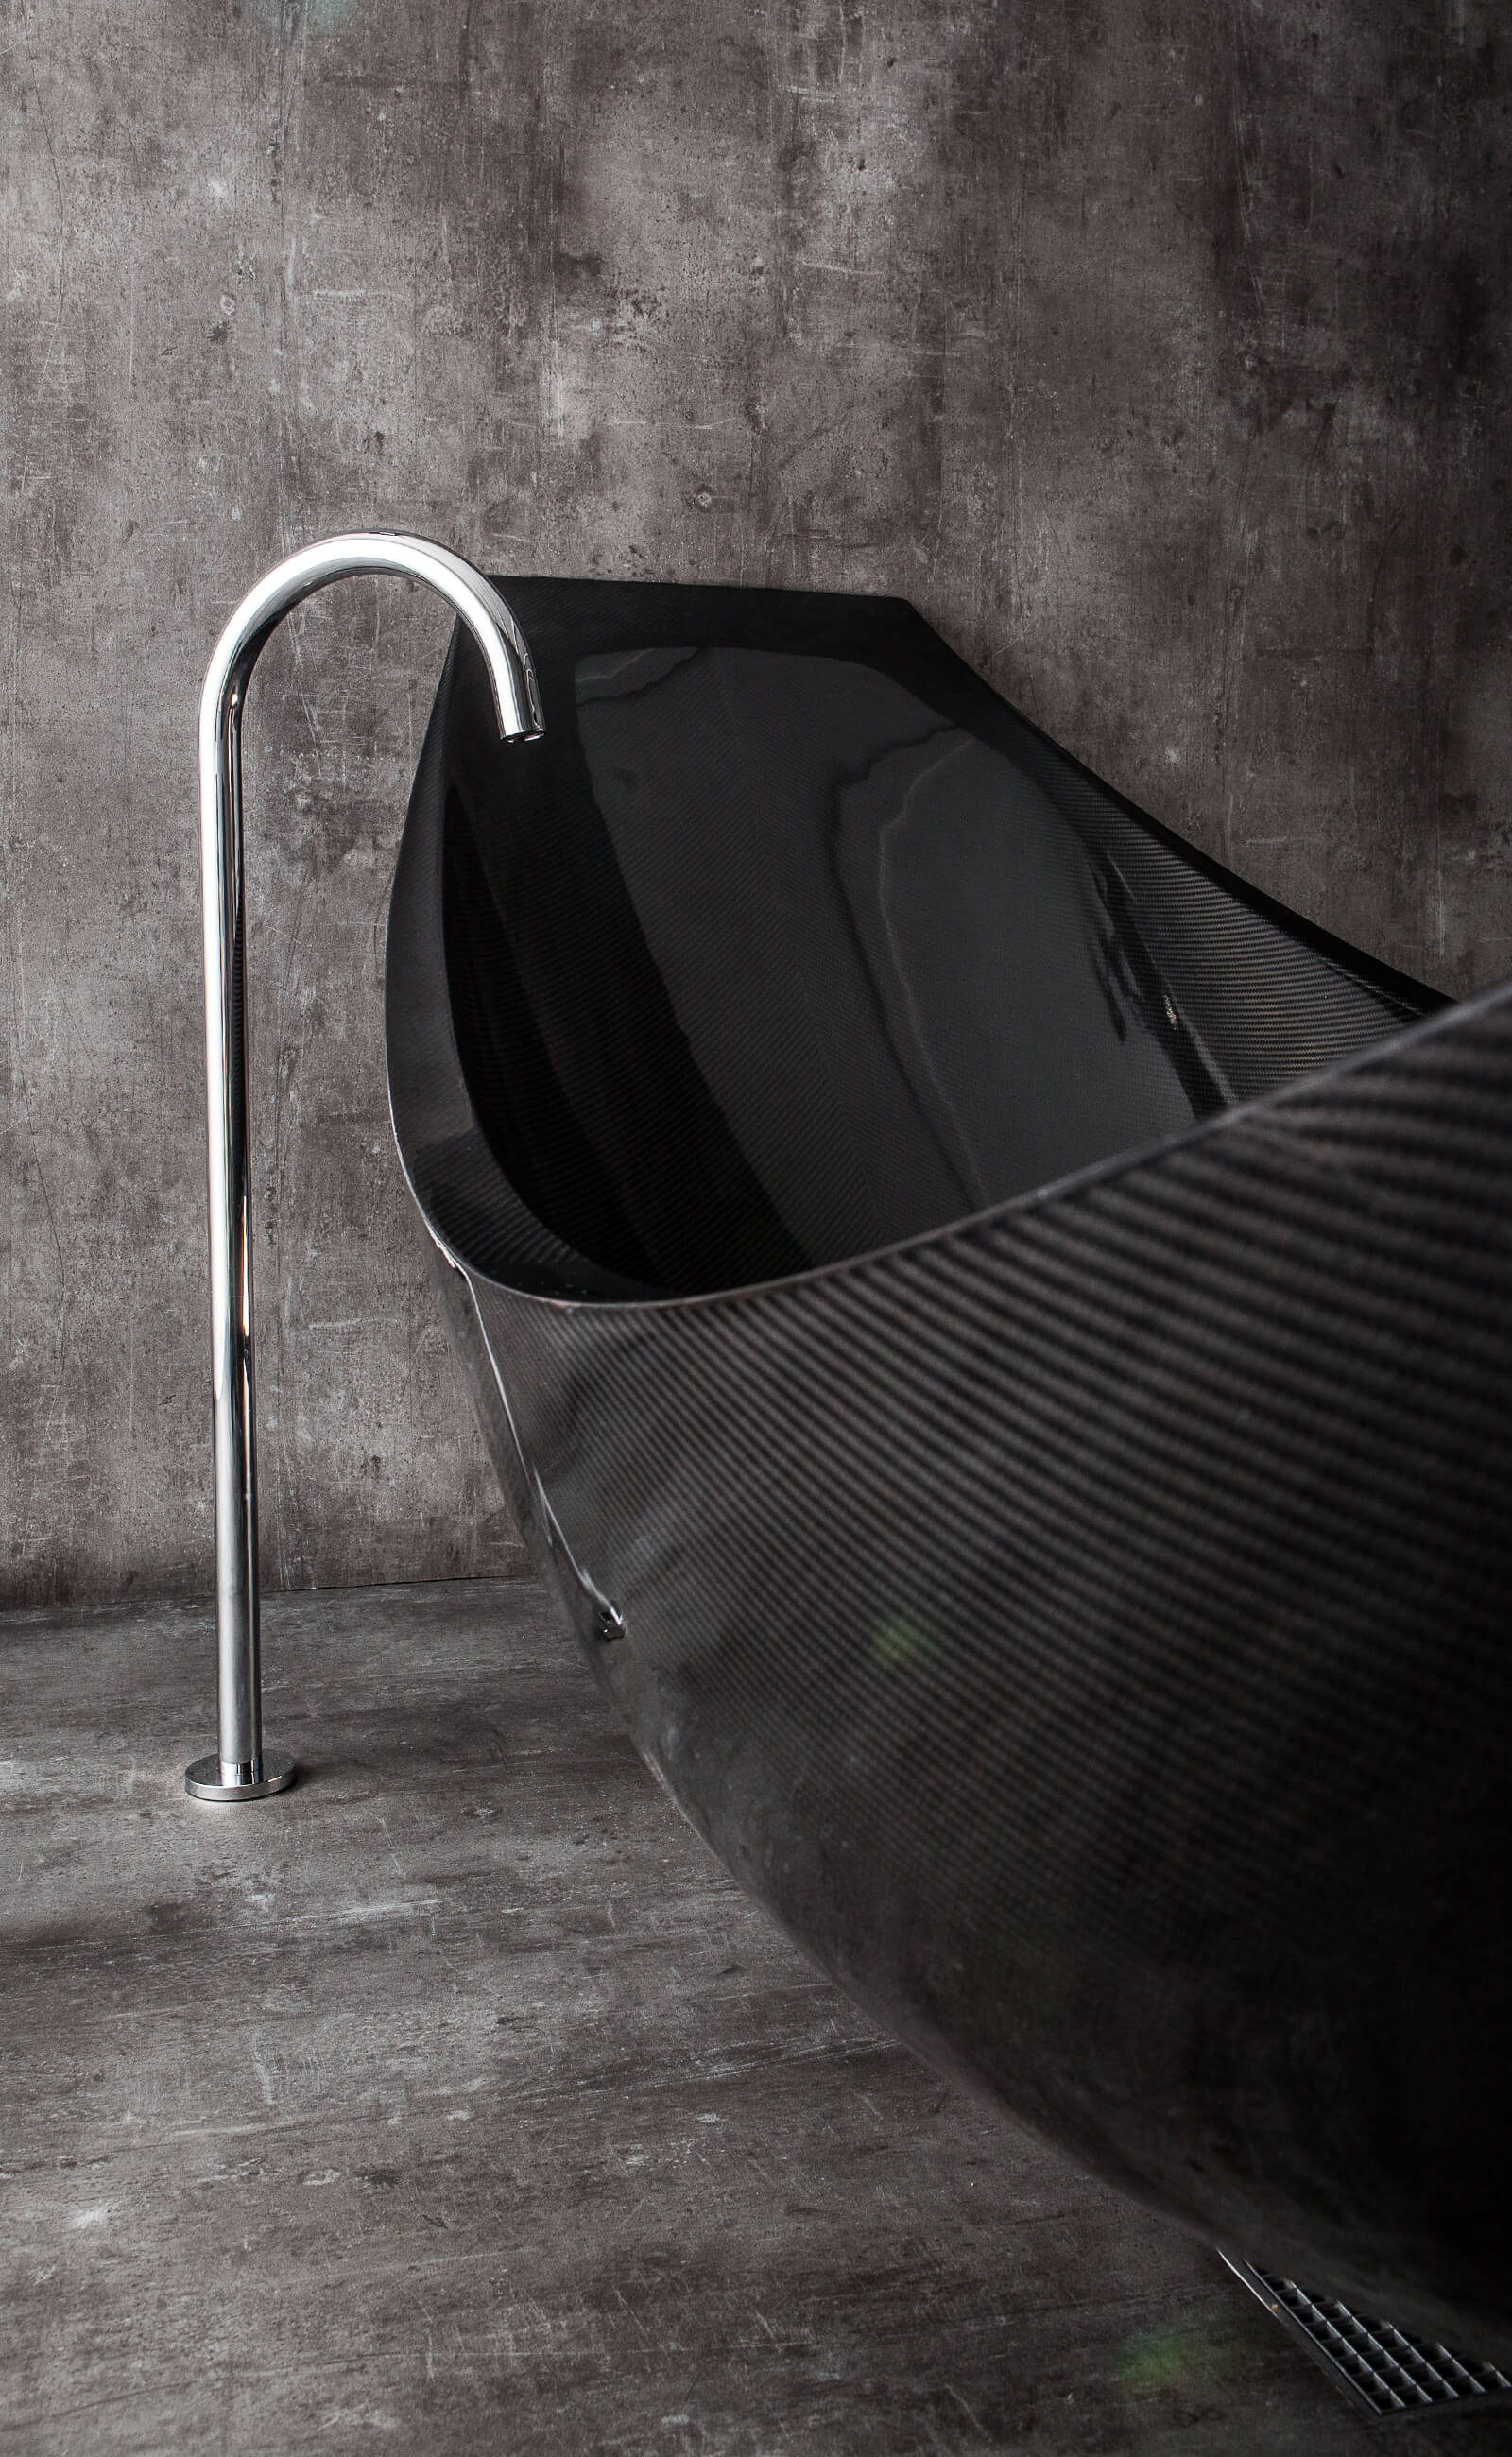 Detail of floor standing bath tap next to black suspended bath in polished concrete wet room manufactured by Splinterworks